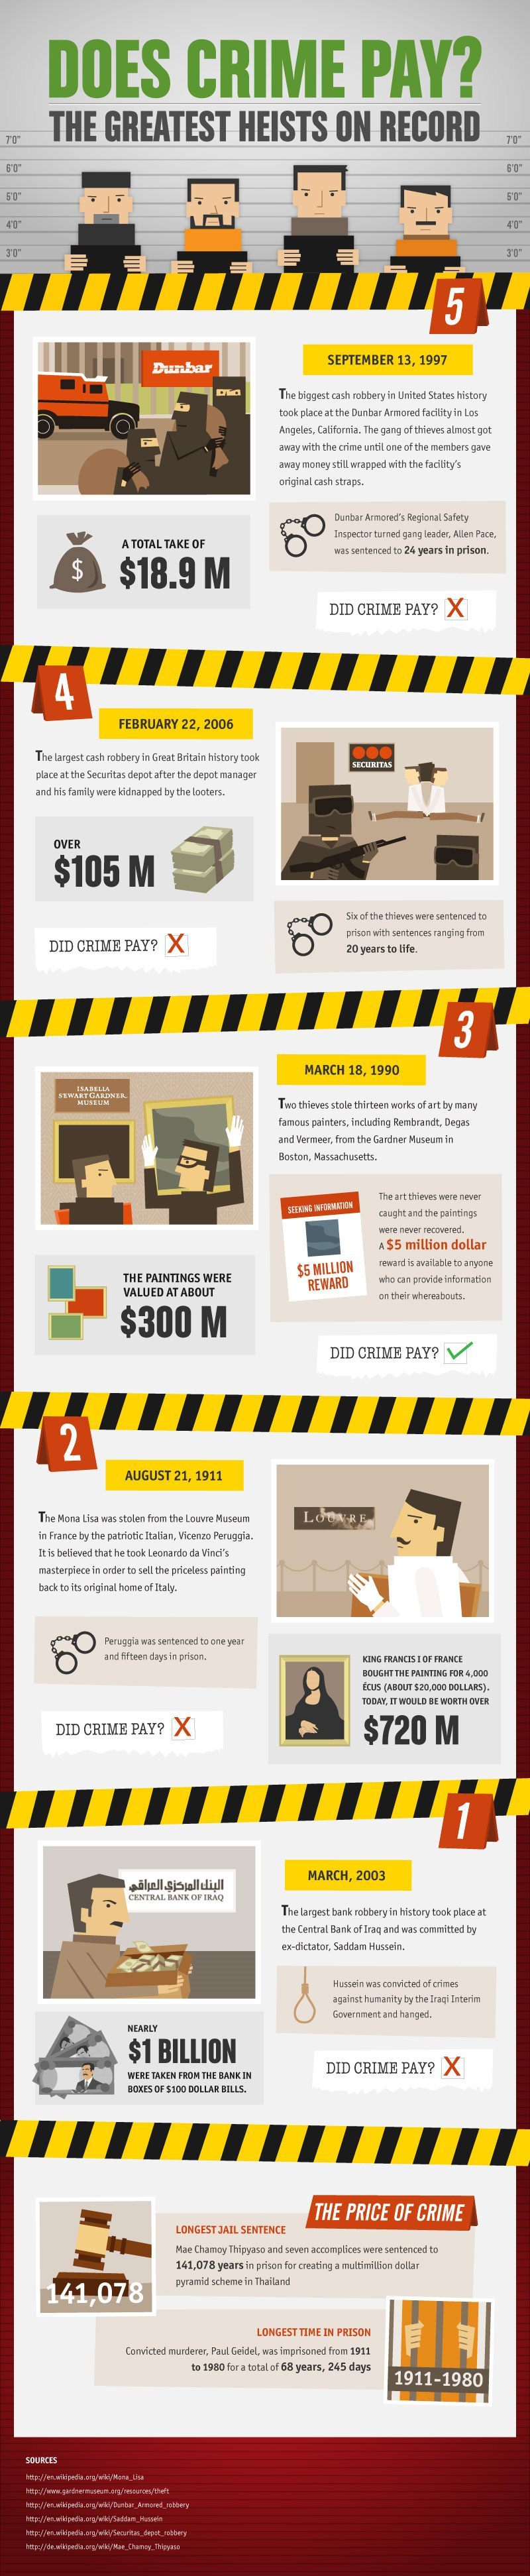 does crime pay greatest heists on record infographic